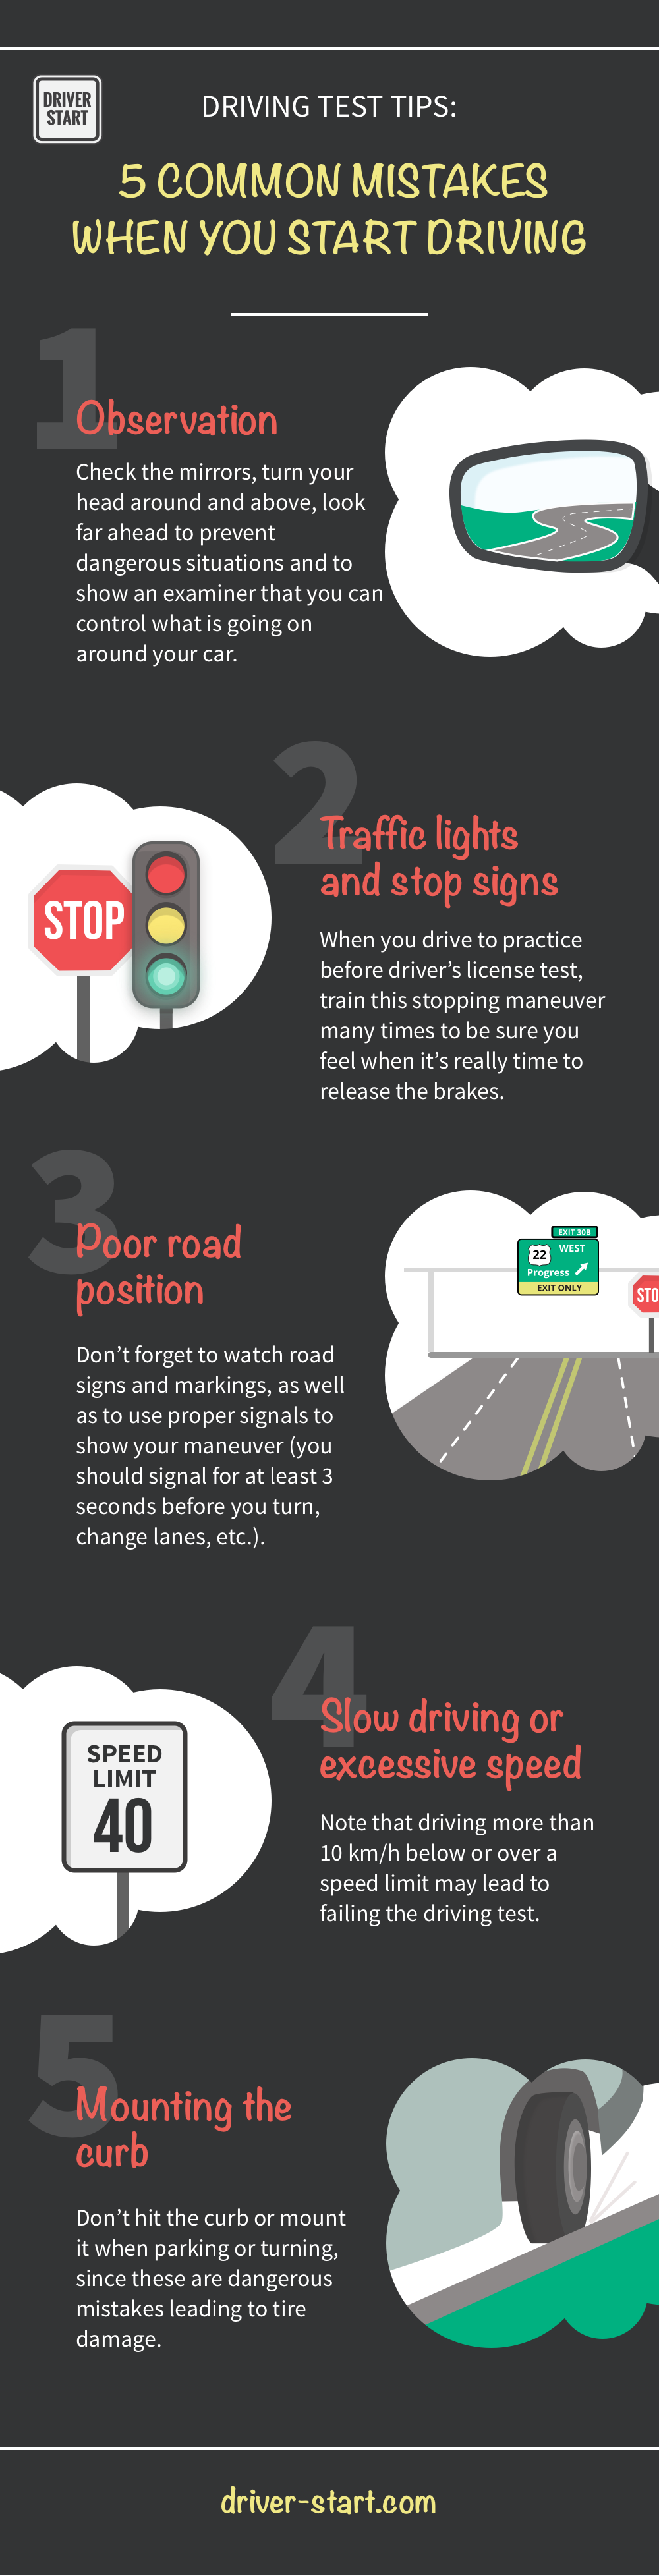 5 common mistakes when you start driving